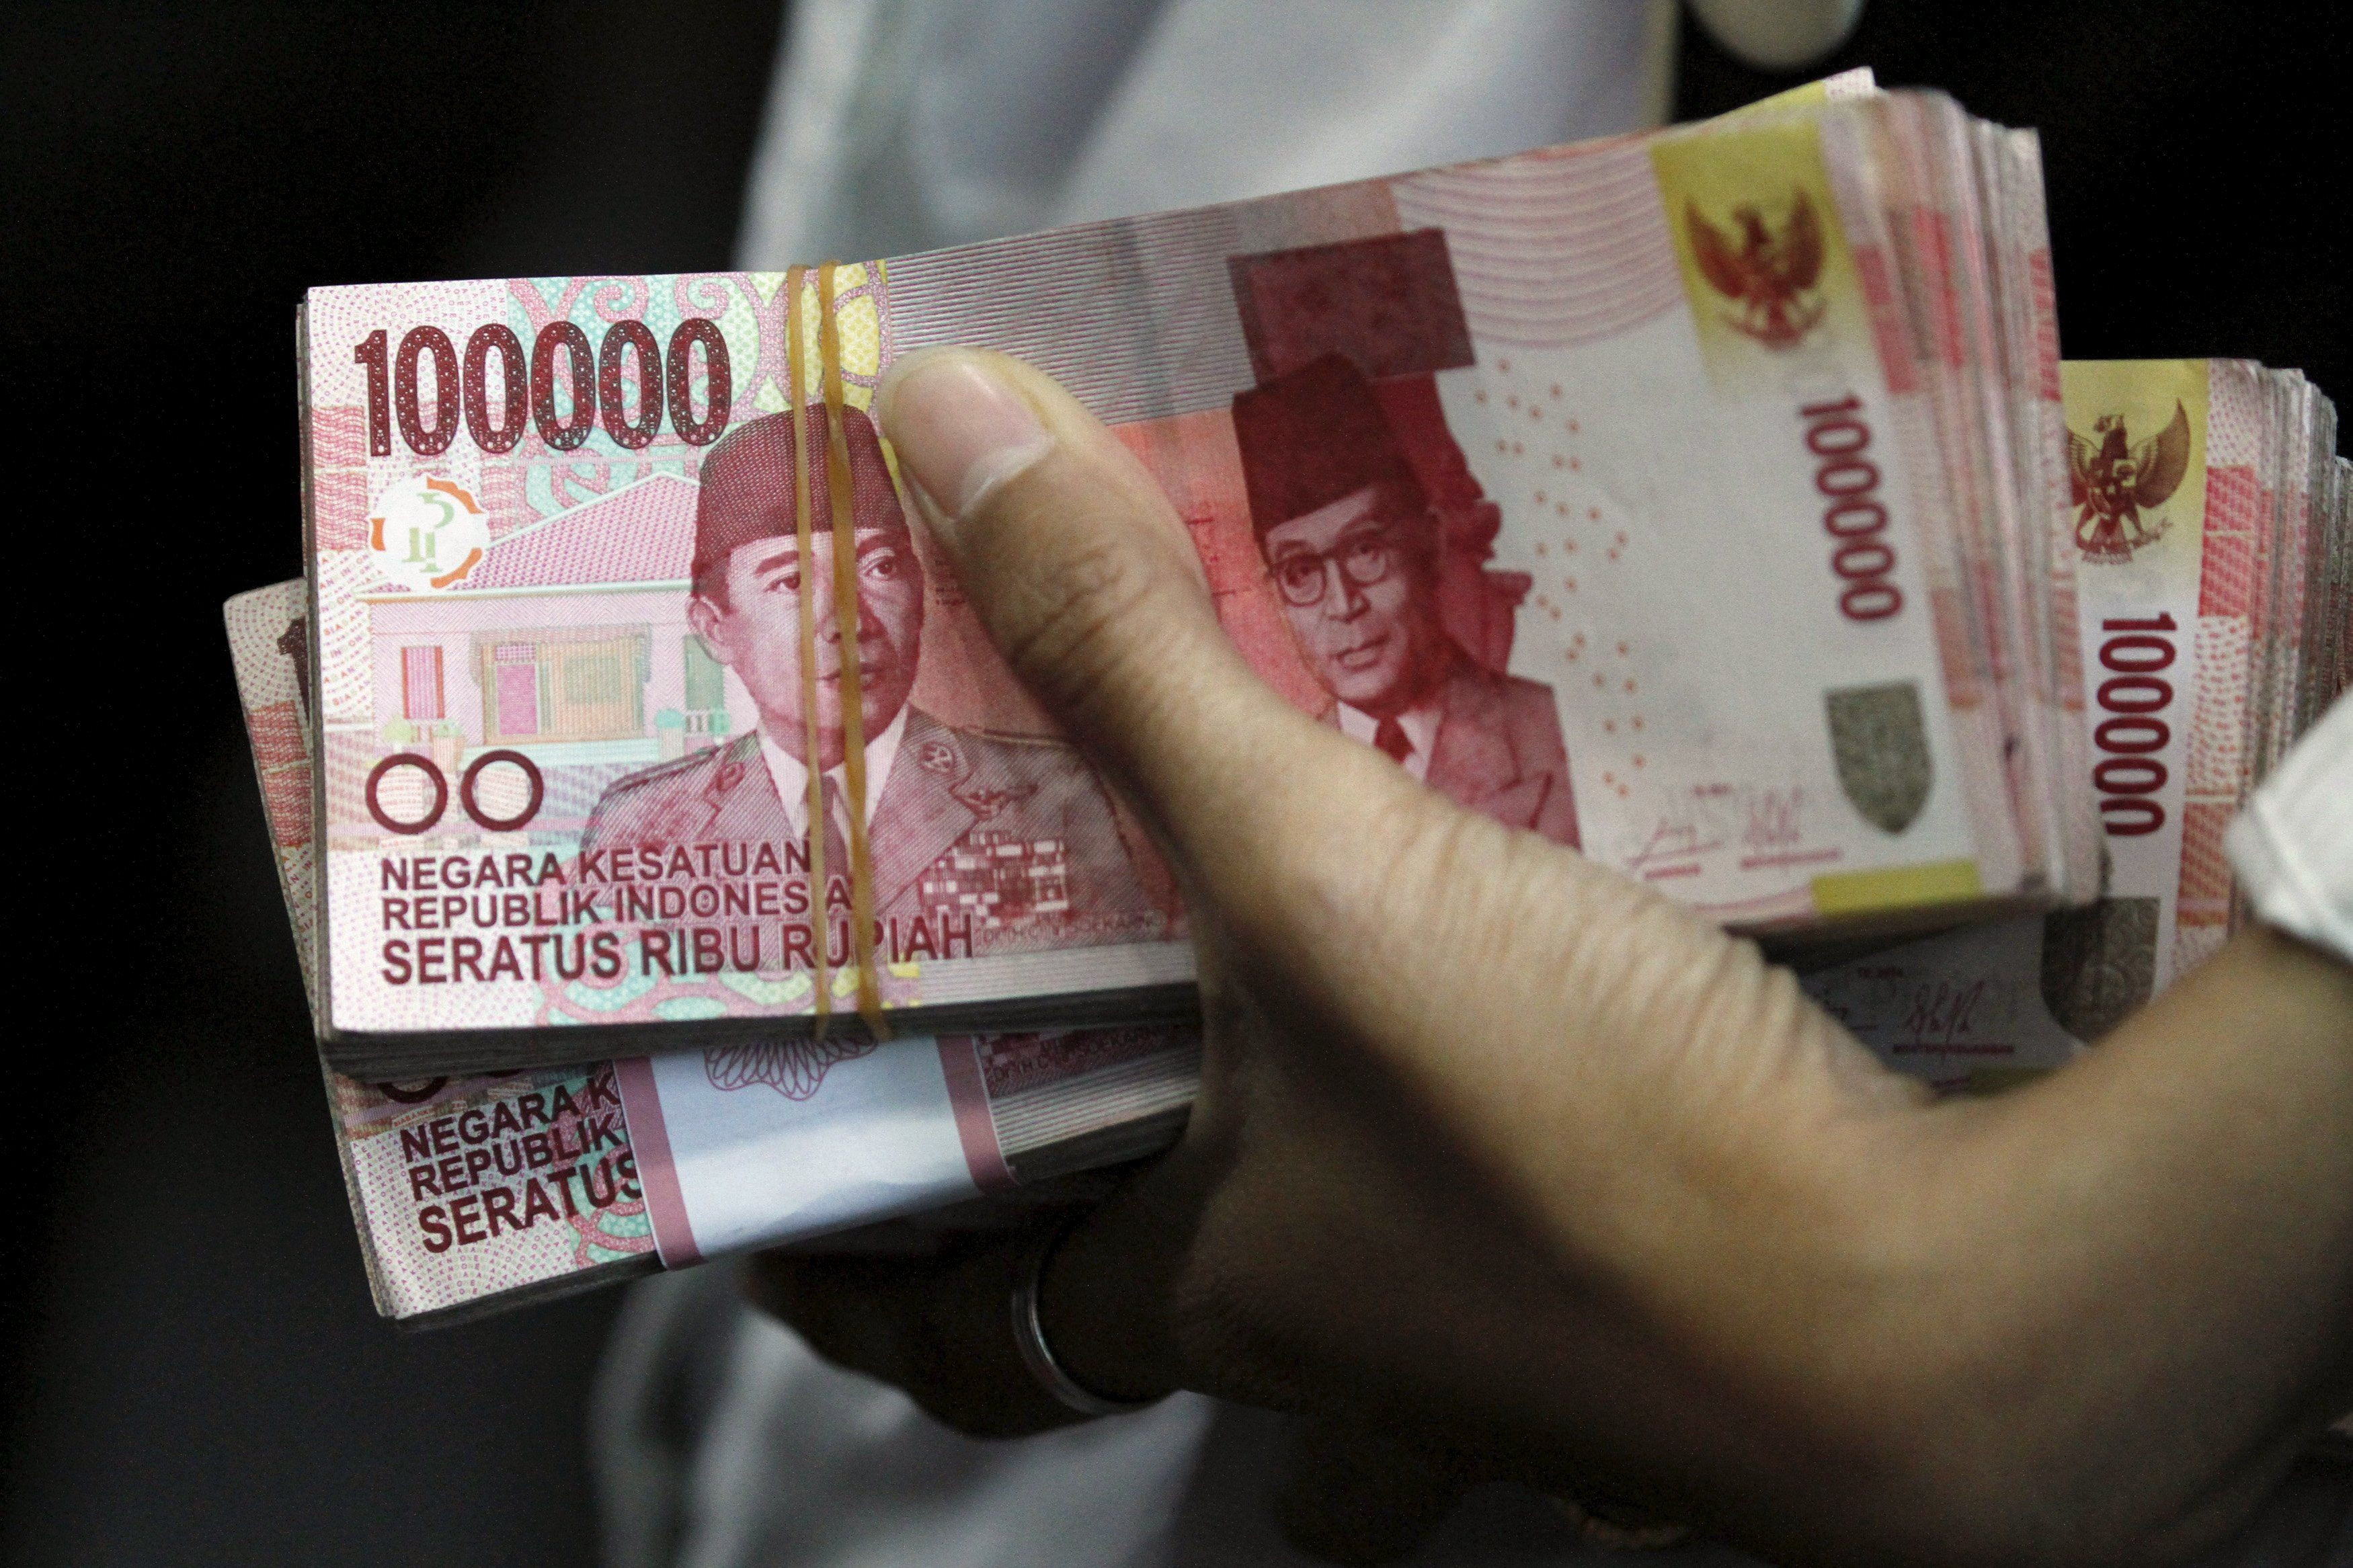 Indonesian Rupiah S Cur Exchange Rate Against The Us Dollar Is At A Compeive Level For Export Of Manufactured Goods Bank Indonesia Senior Deputy